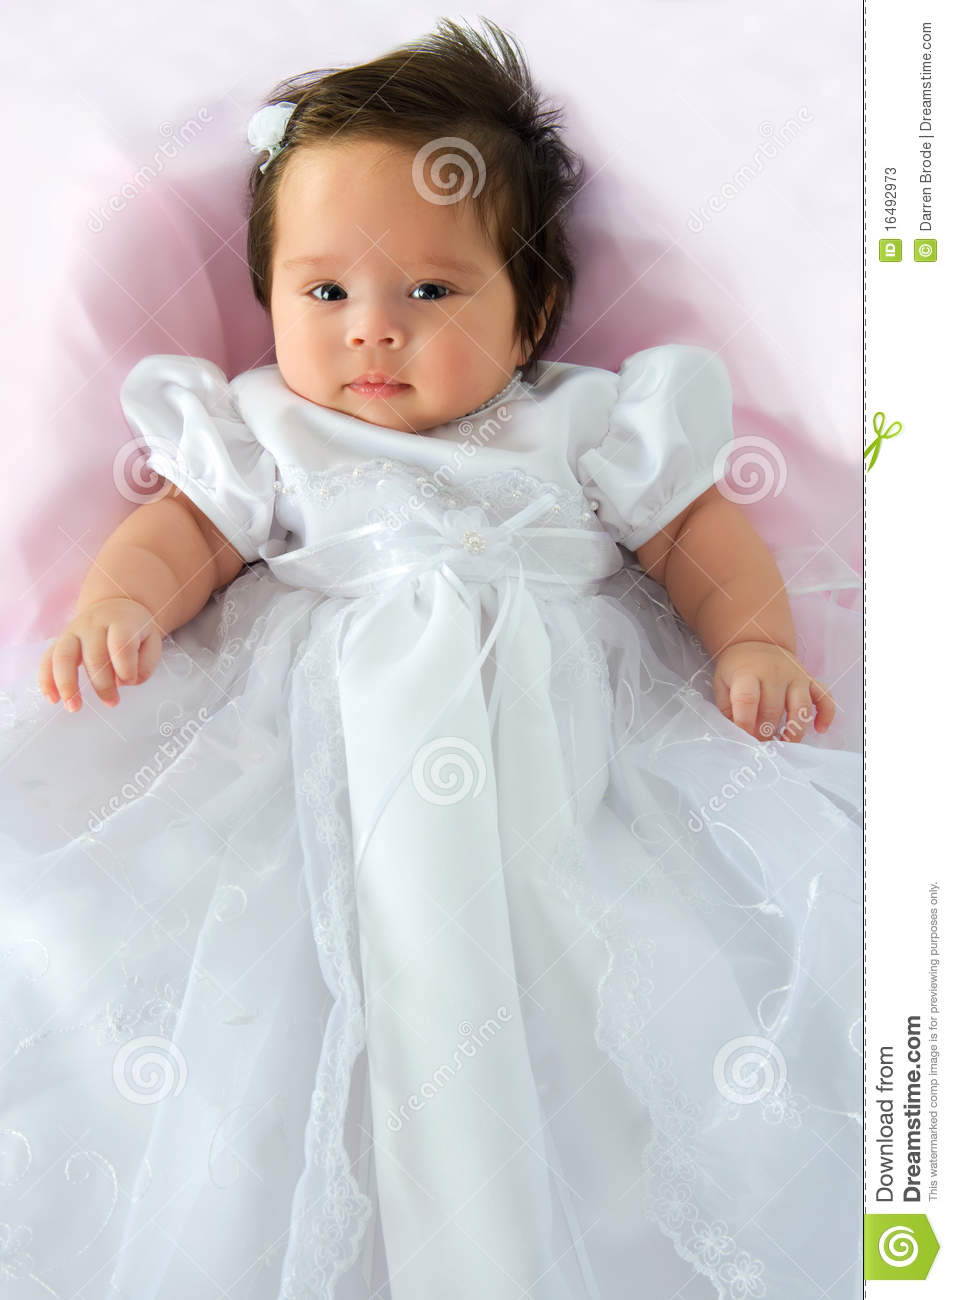 Baby Girl In Baptism Dress Stock Photos - Image: 16492973